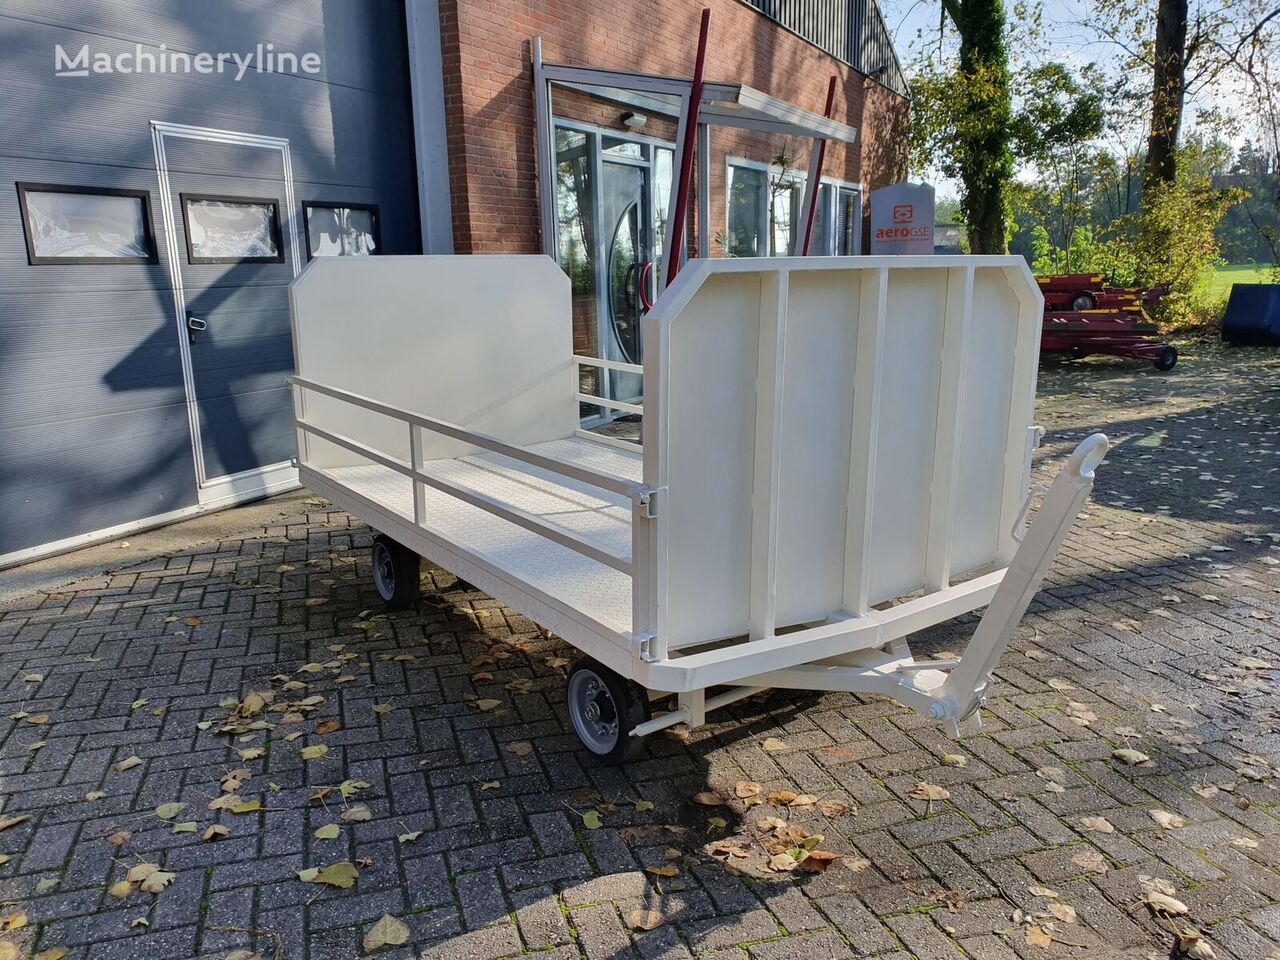 YUMBO CPE / 1600 Baggage cart other airport equipment